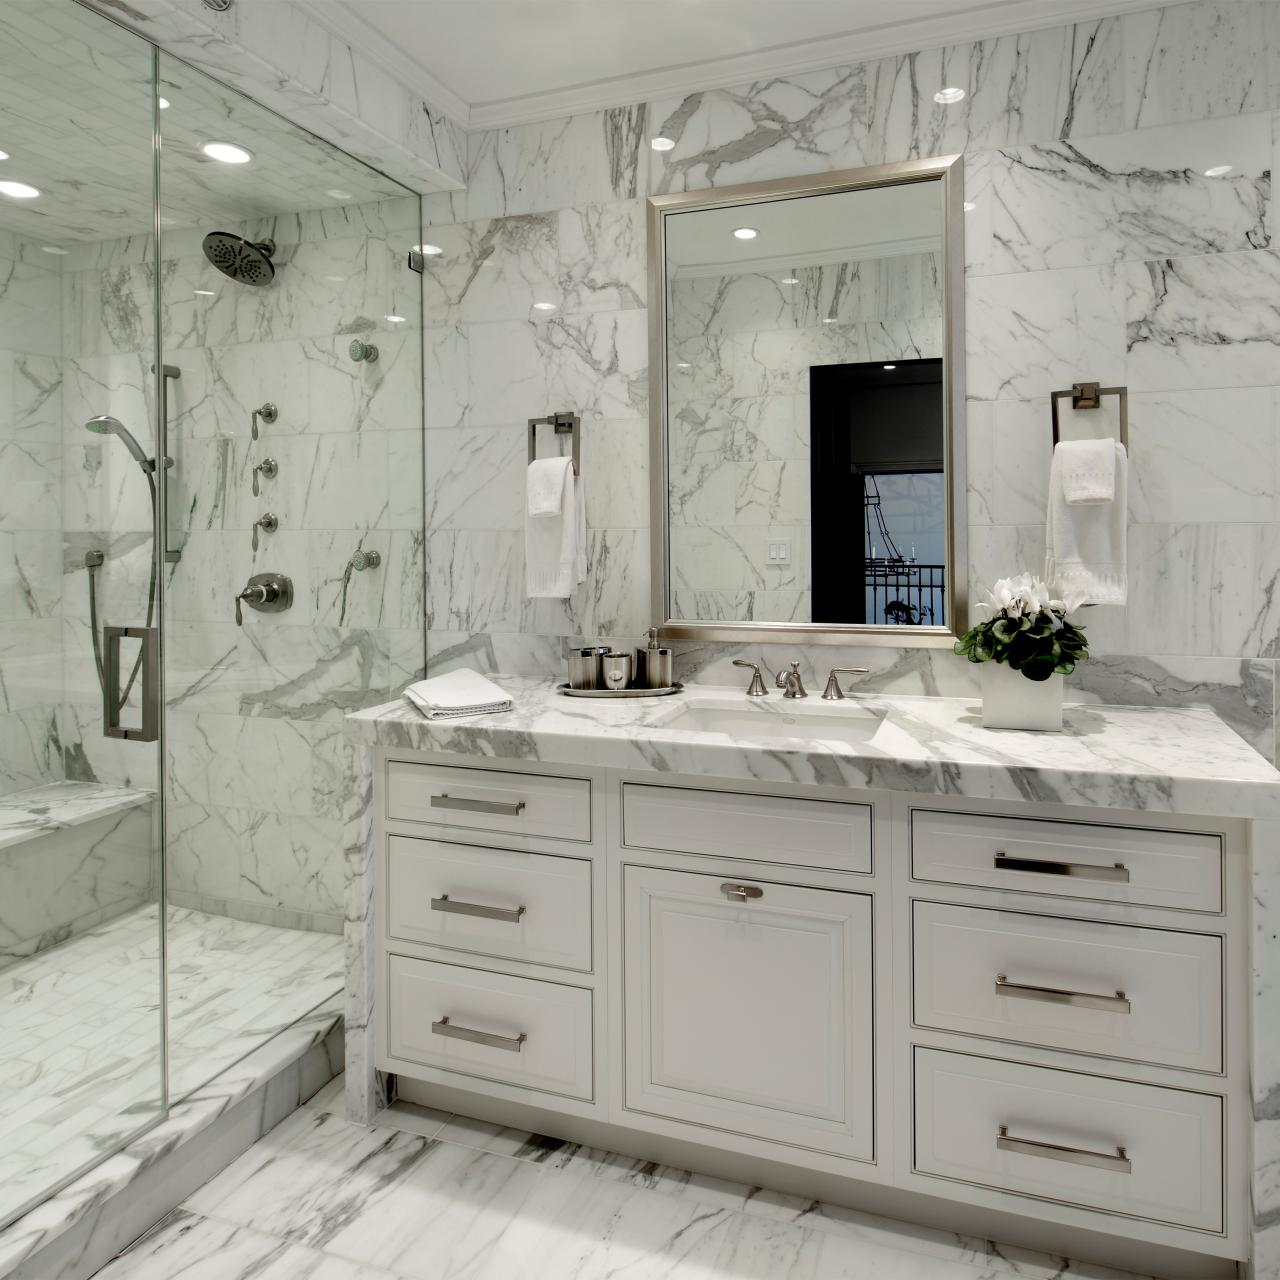 White Marble Tile Bathroom Ultimate Home Design Ideas Marble Tile Bathroom Decorideasbathroom Com Best Bath Ideas